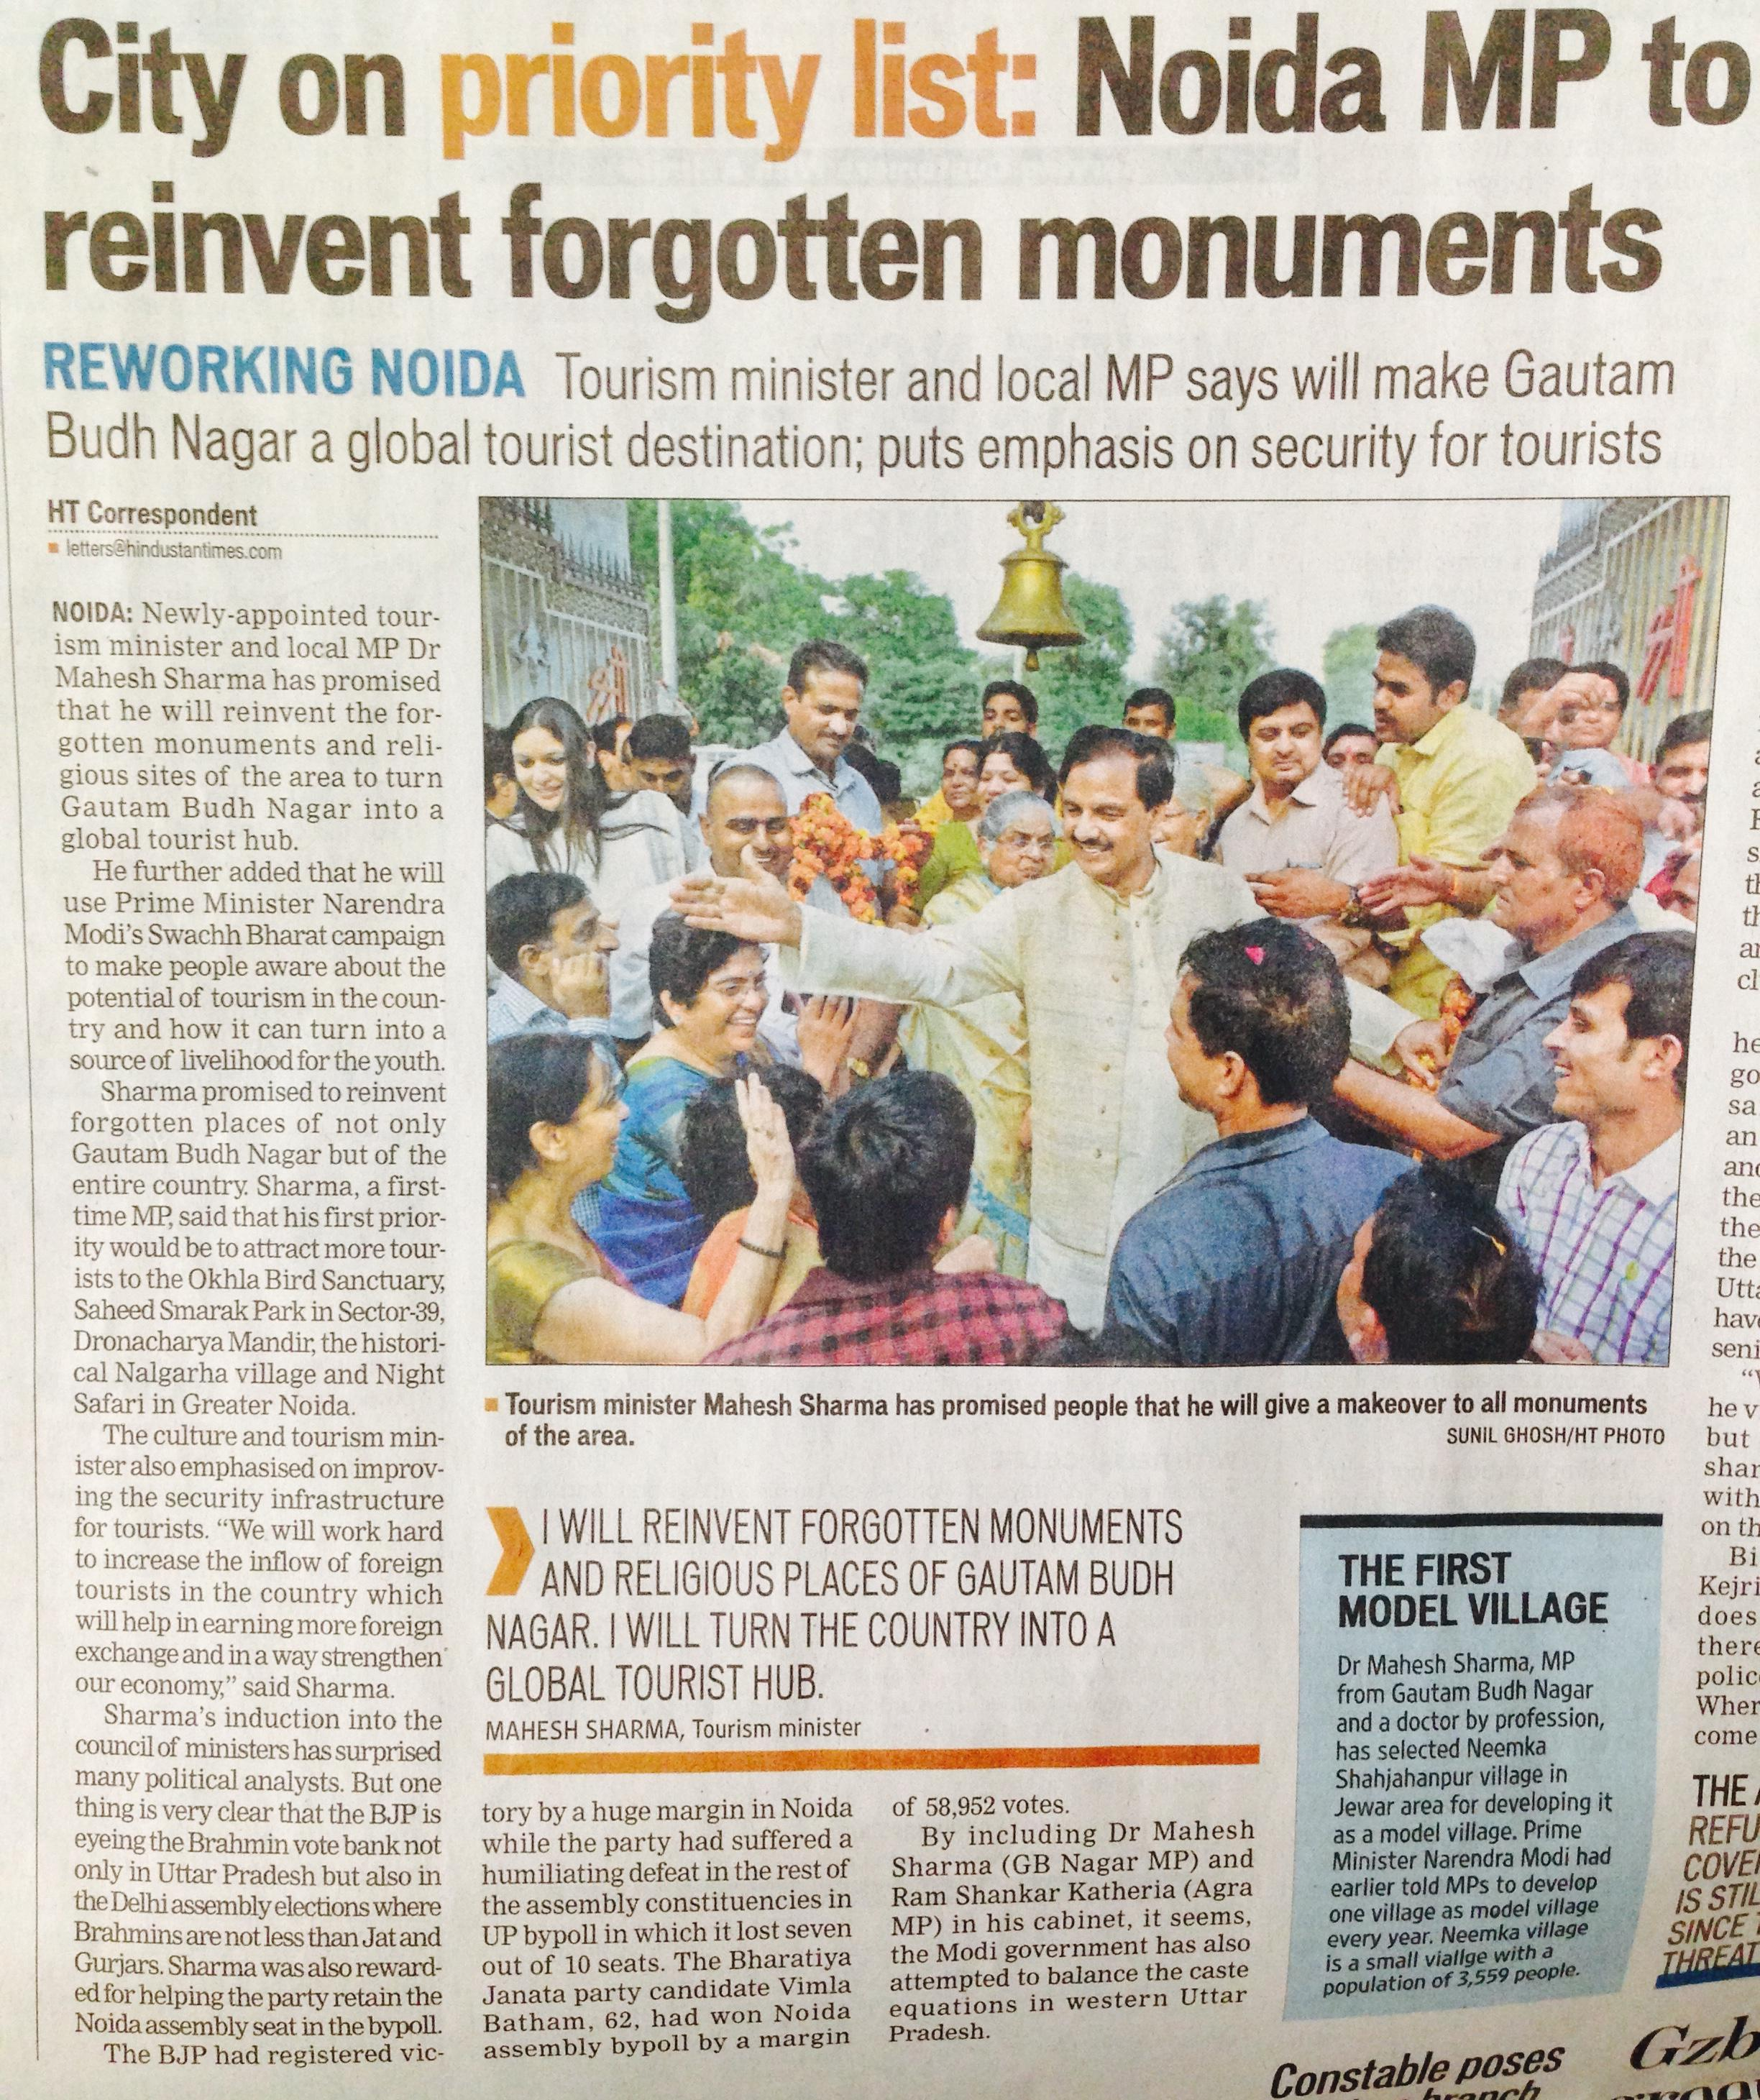 City on Priority List: Noida MP to reinvent forgotten monuments